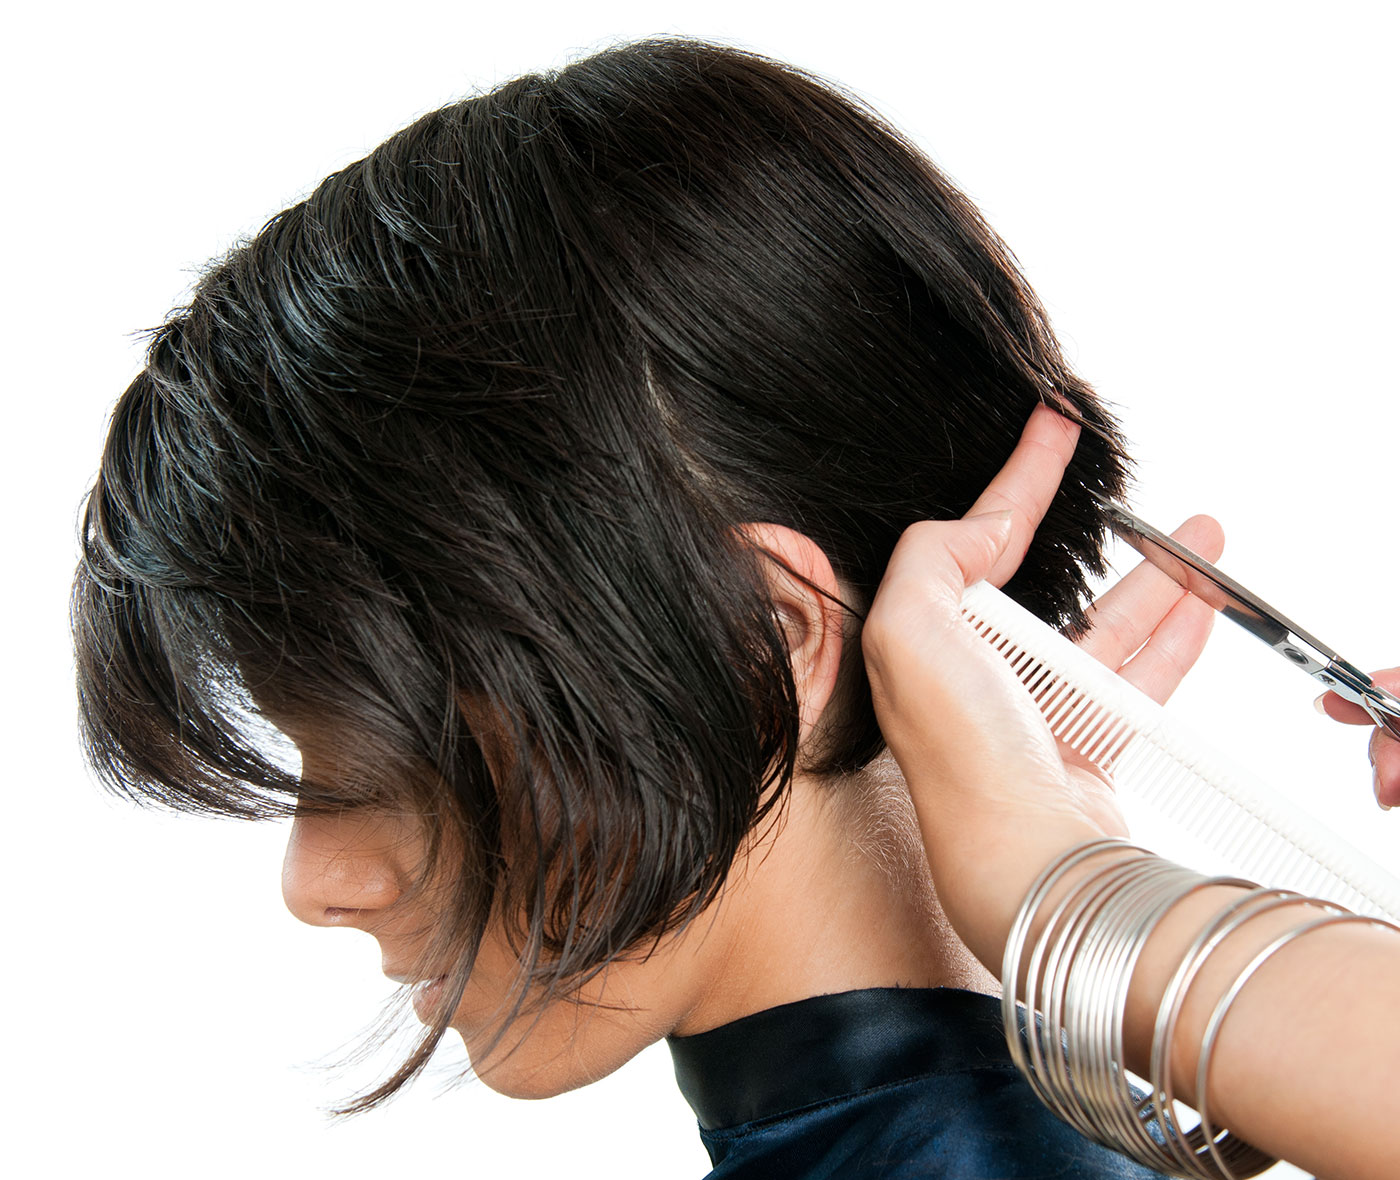 Women's Hairstyling at Wilborn Hair Salon